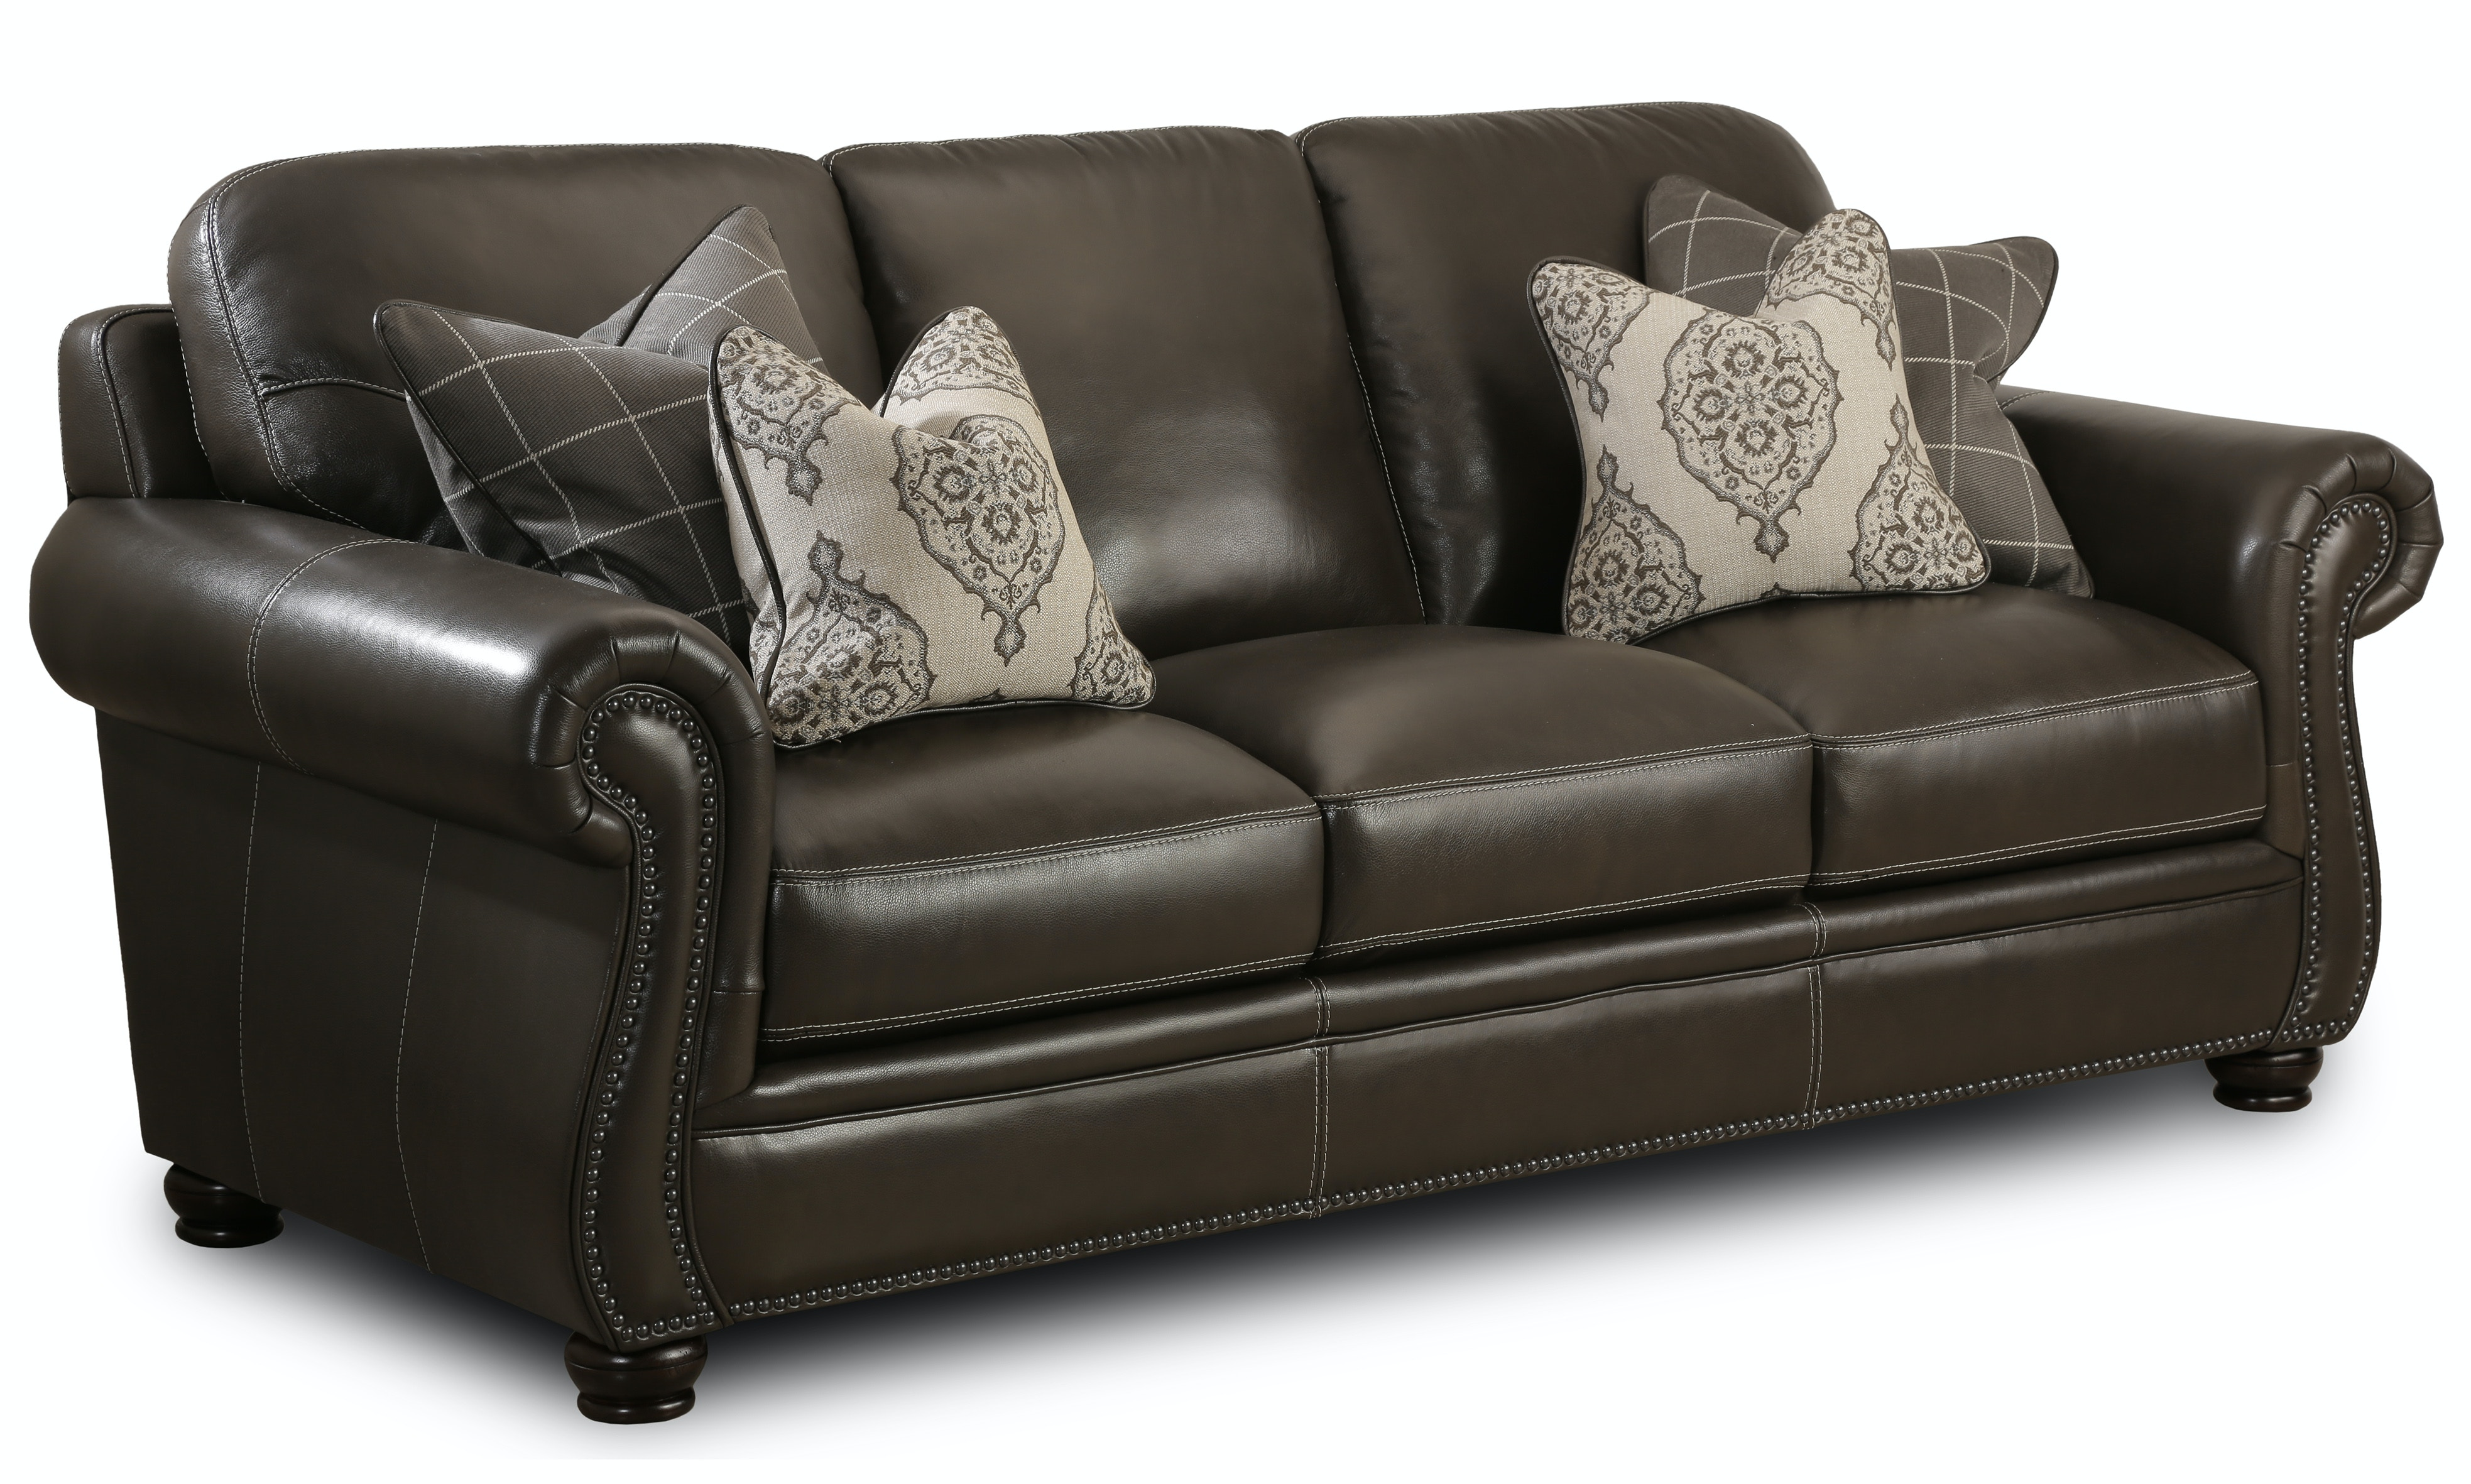 2 seater sofa bed furniture village ben whistler leather chair sofas 1 full ...